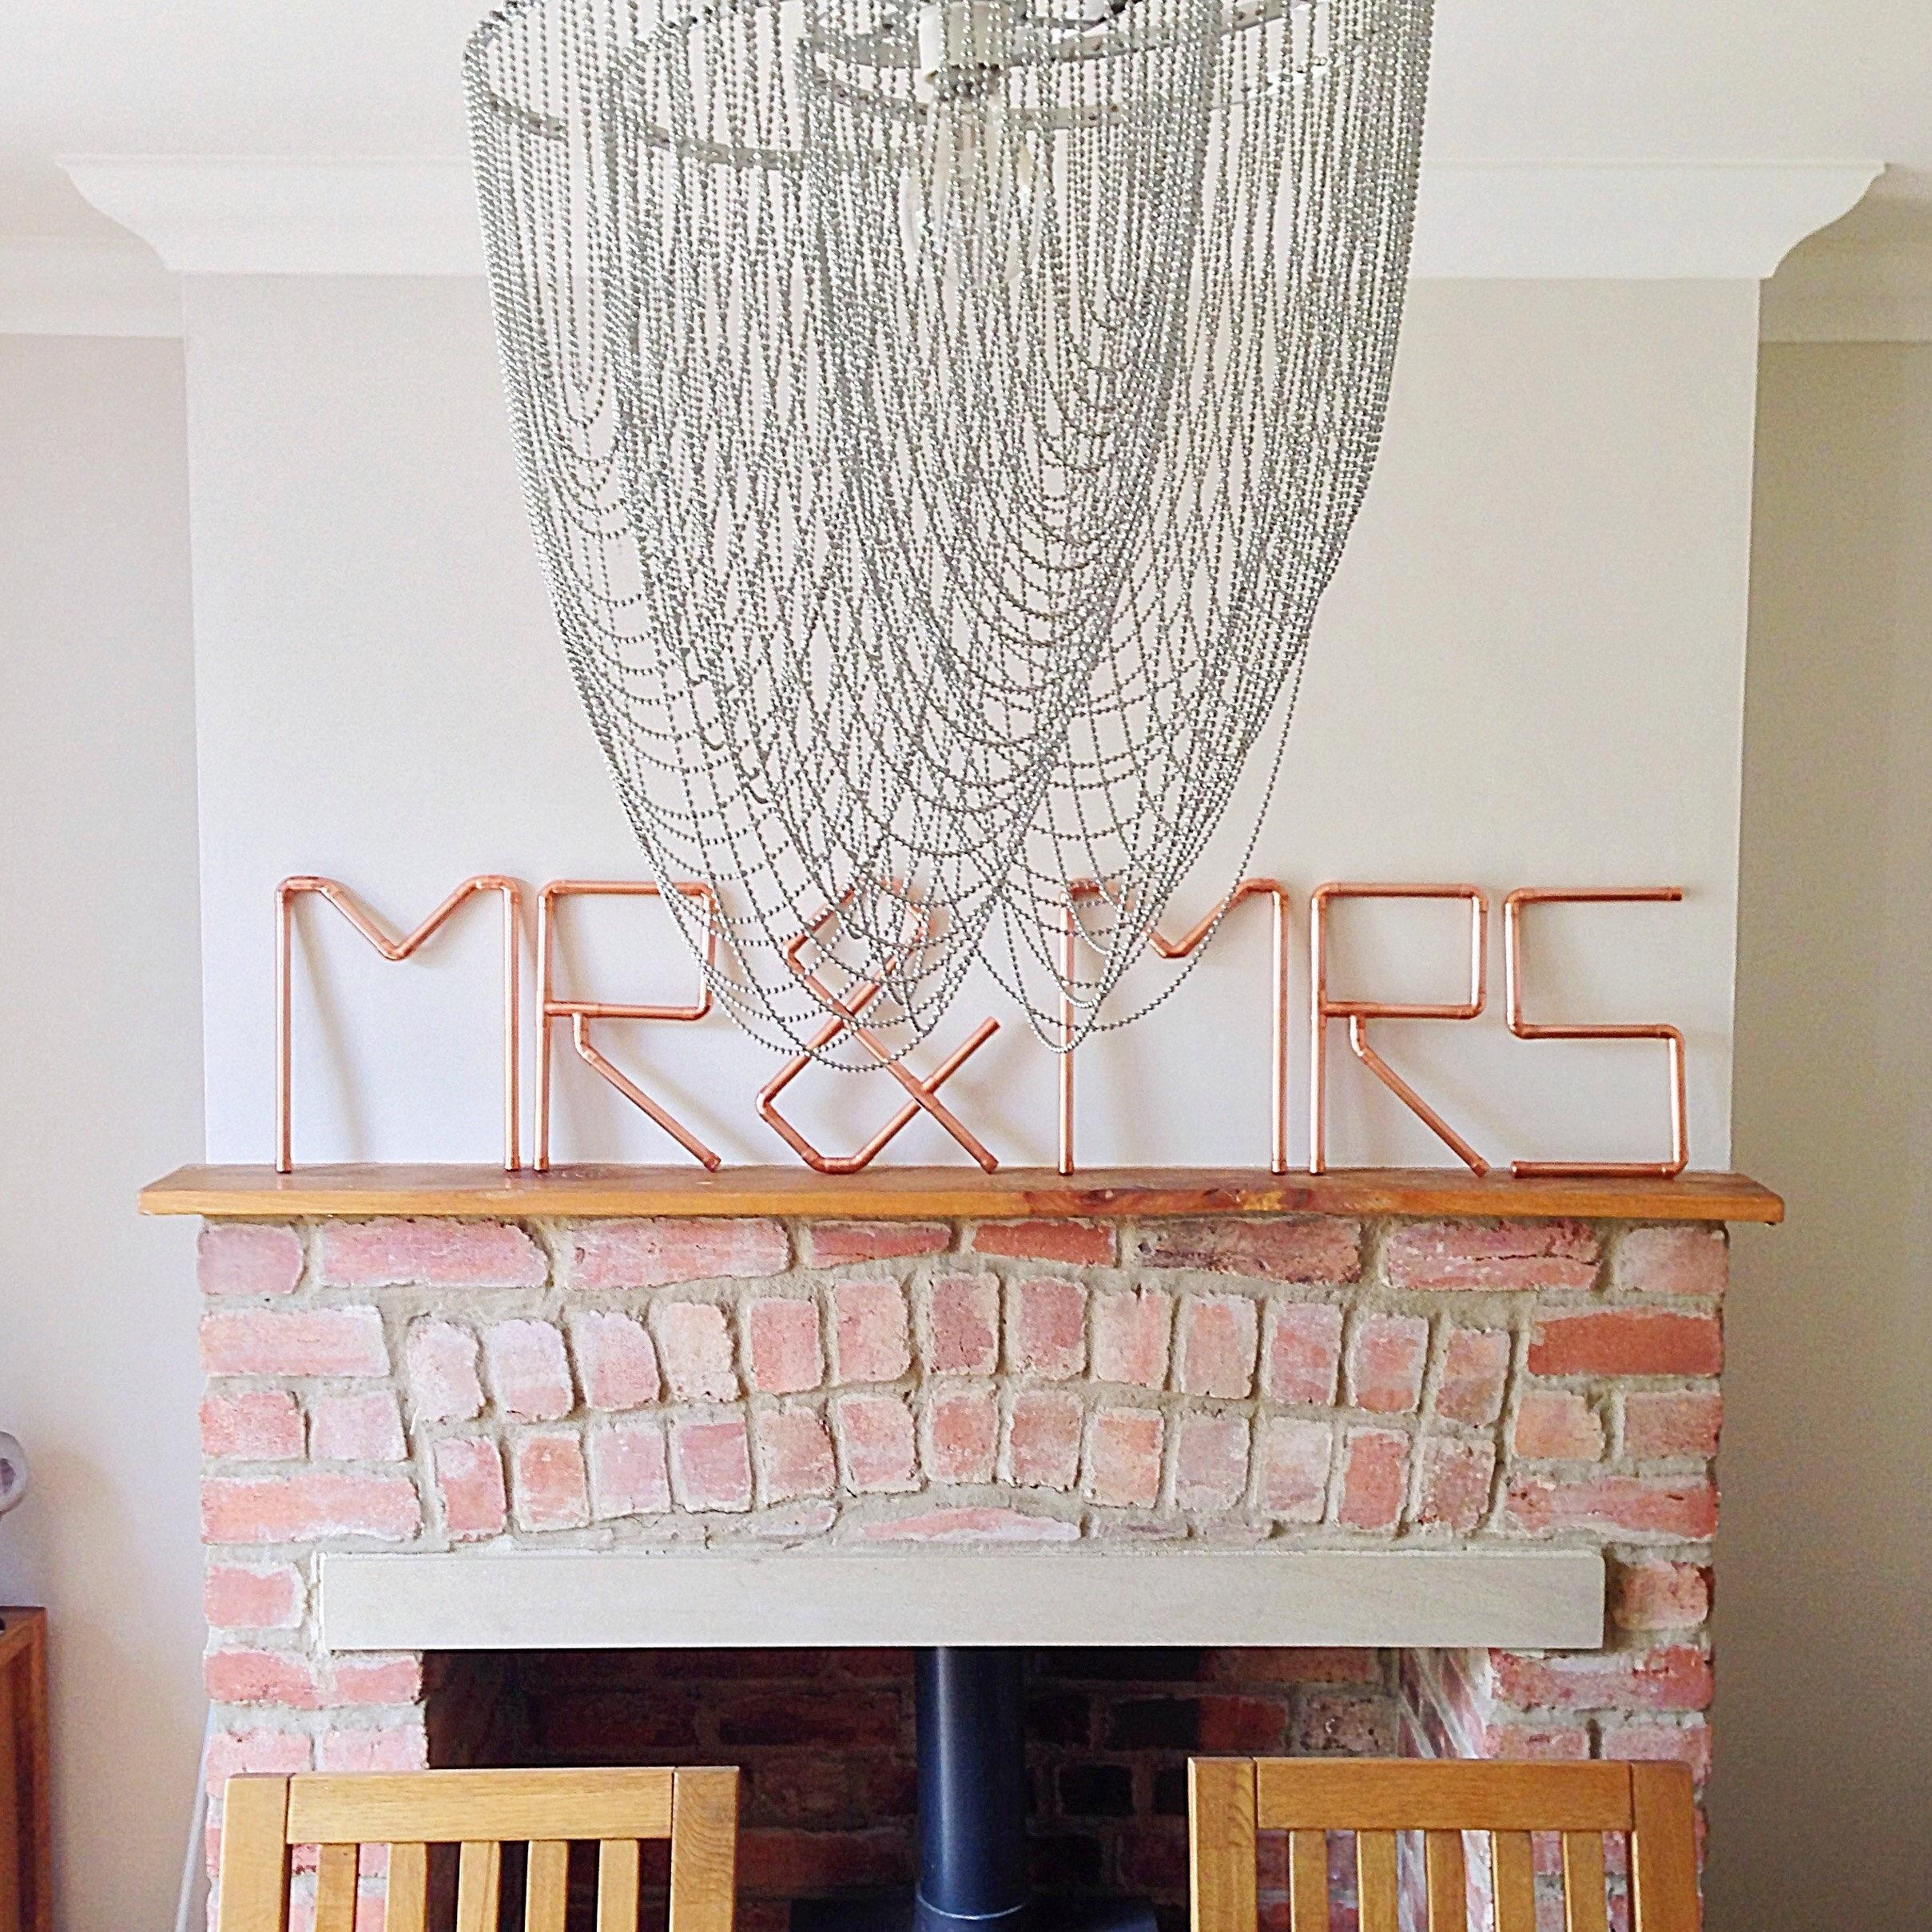 Mr & Mrs, Wall Art, Copper Pipe, Signage, Wedding, Anniversary Intended For Mr And Mrs Wall Art (Image 6 of 20)